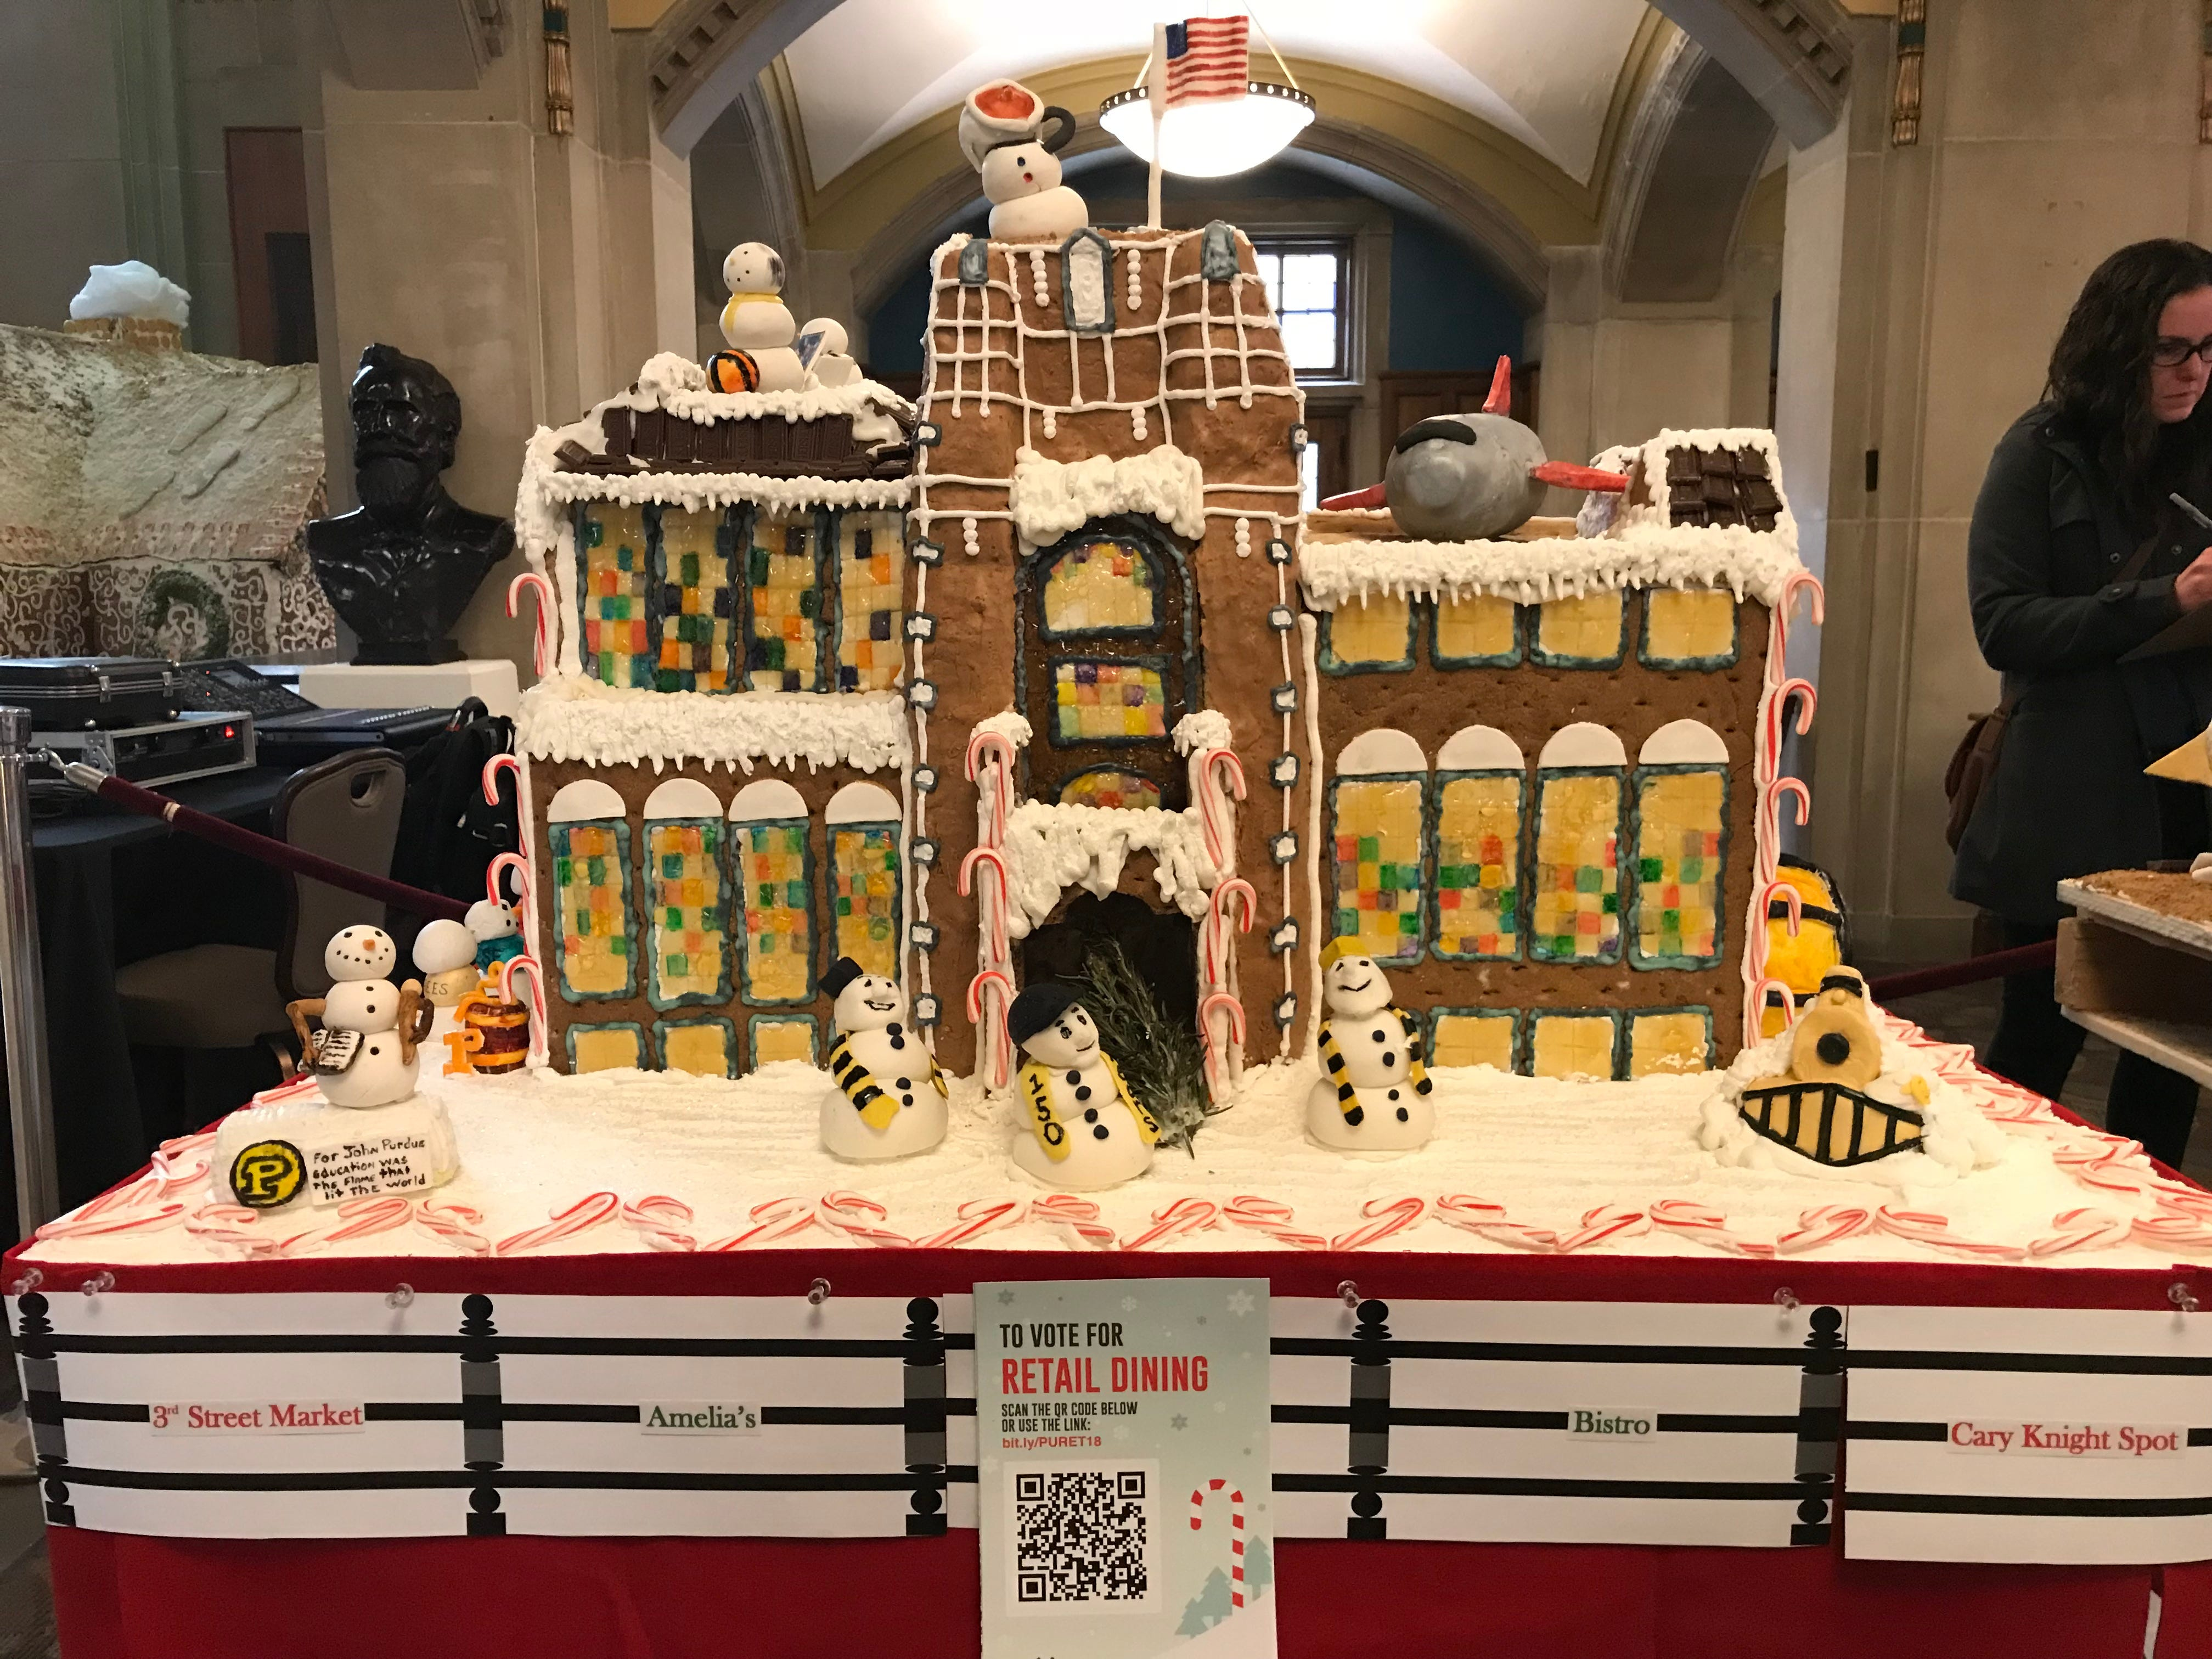 Retail Dining's gingerbread display